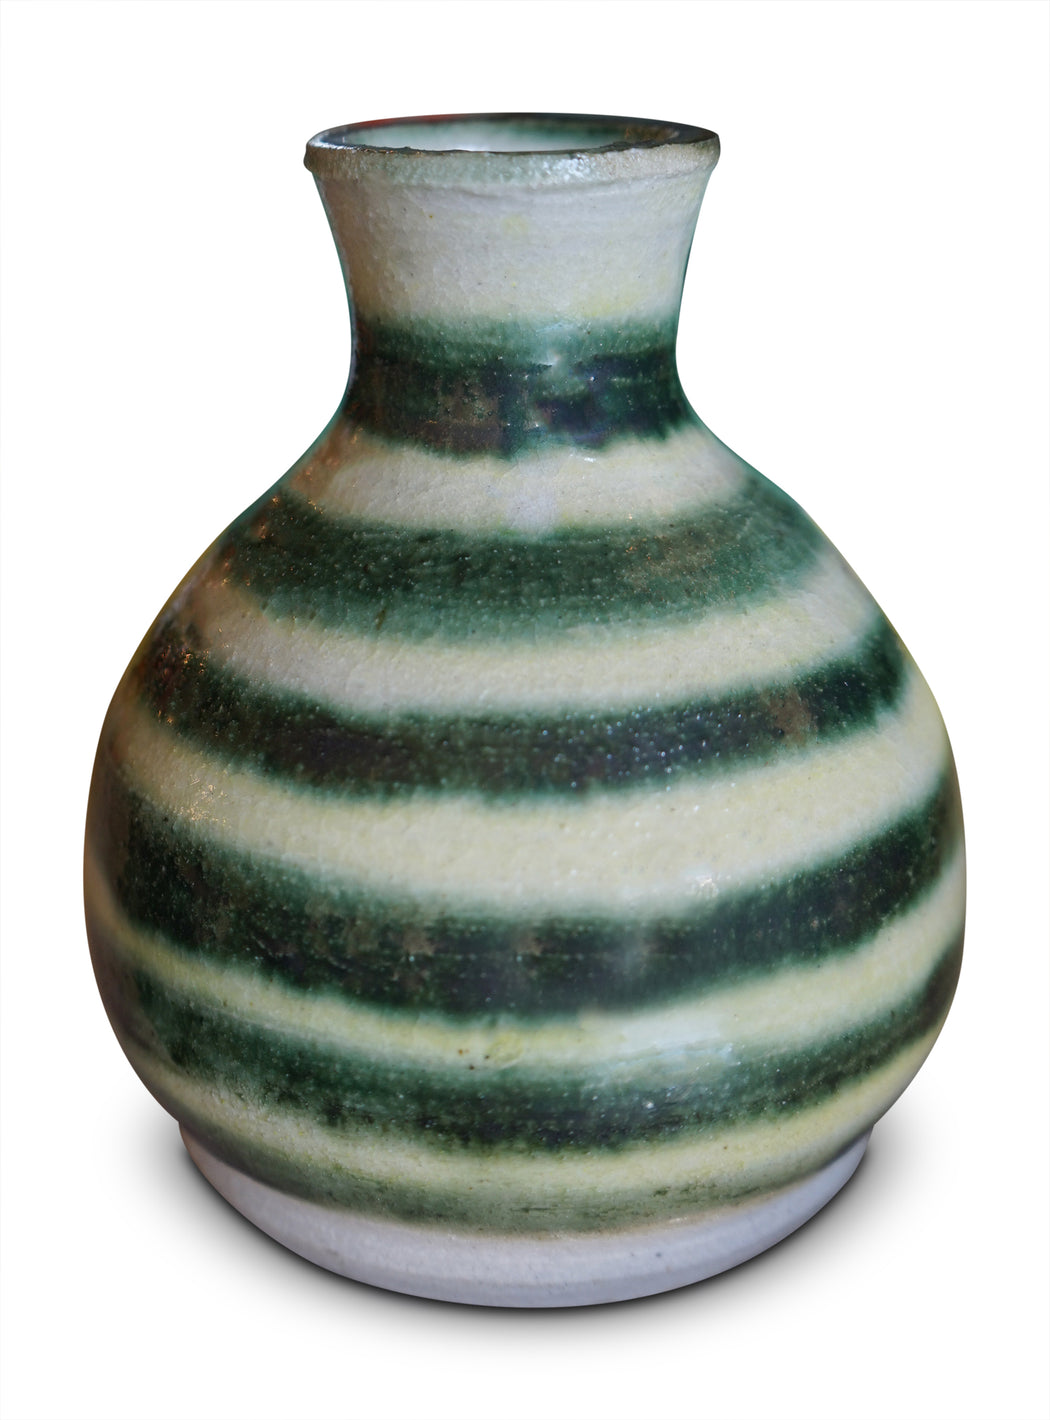 Striped Glazed Ceramic Vase